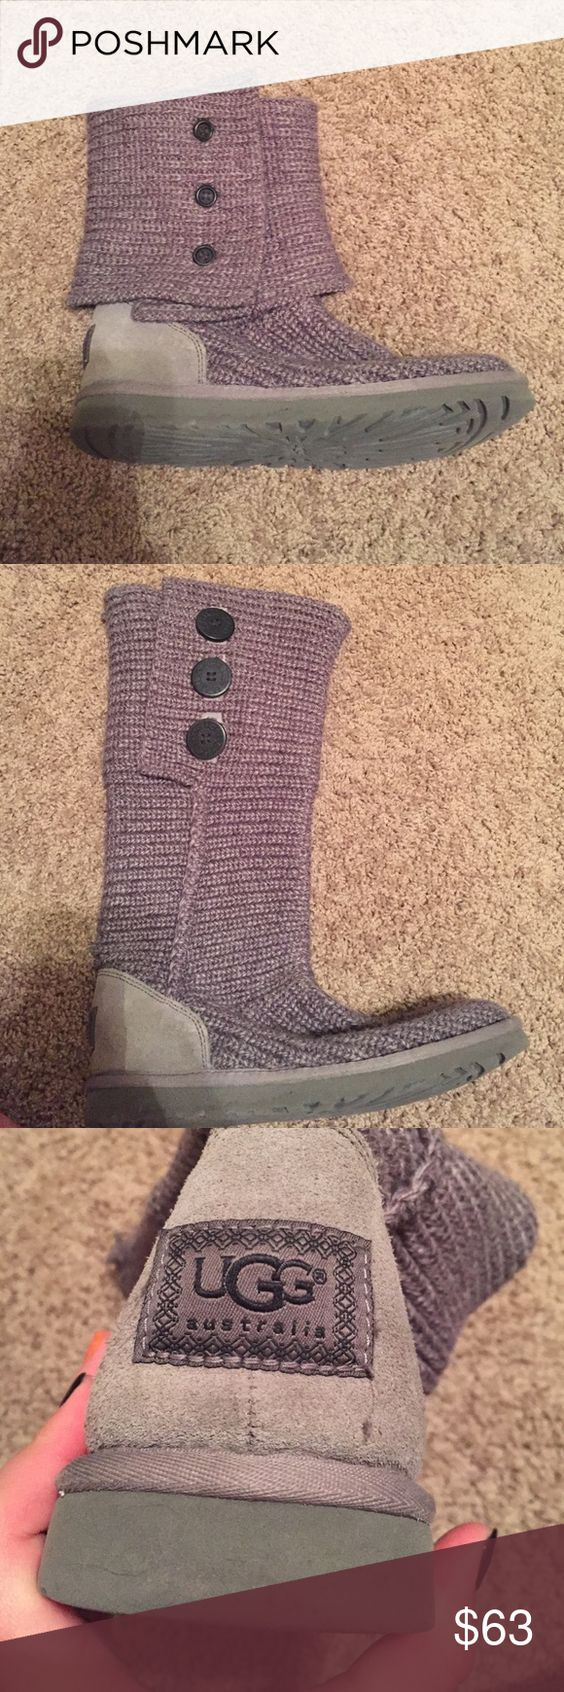 Ugg Sweater Boots These boots are super comfortable, they have been worn but have been well taken care of. They can be worn rolled down or all the way up. They stretch to fit large calves. UGG Shoes